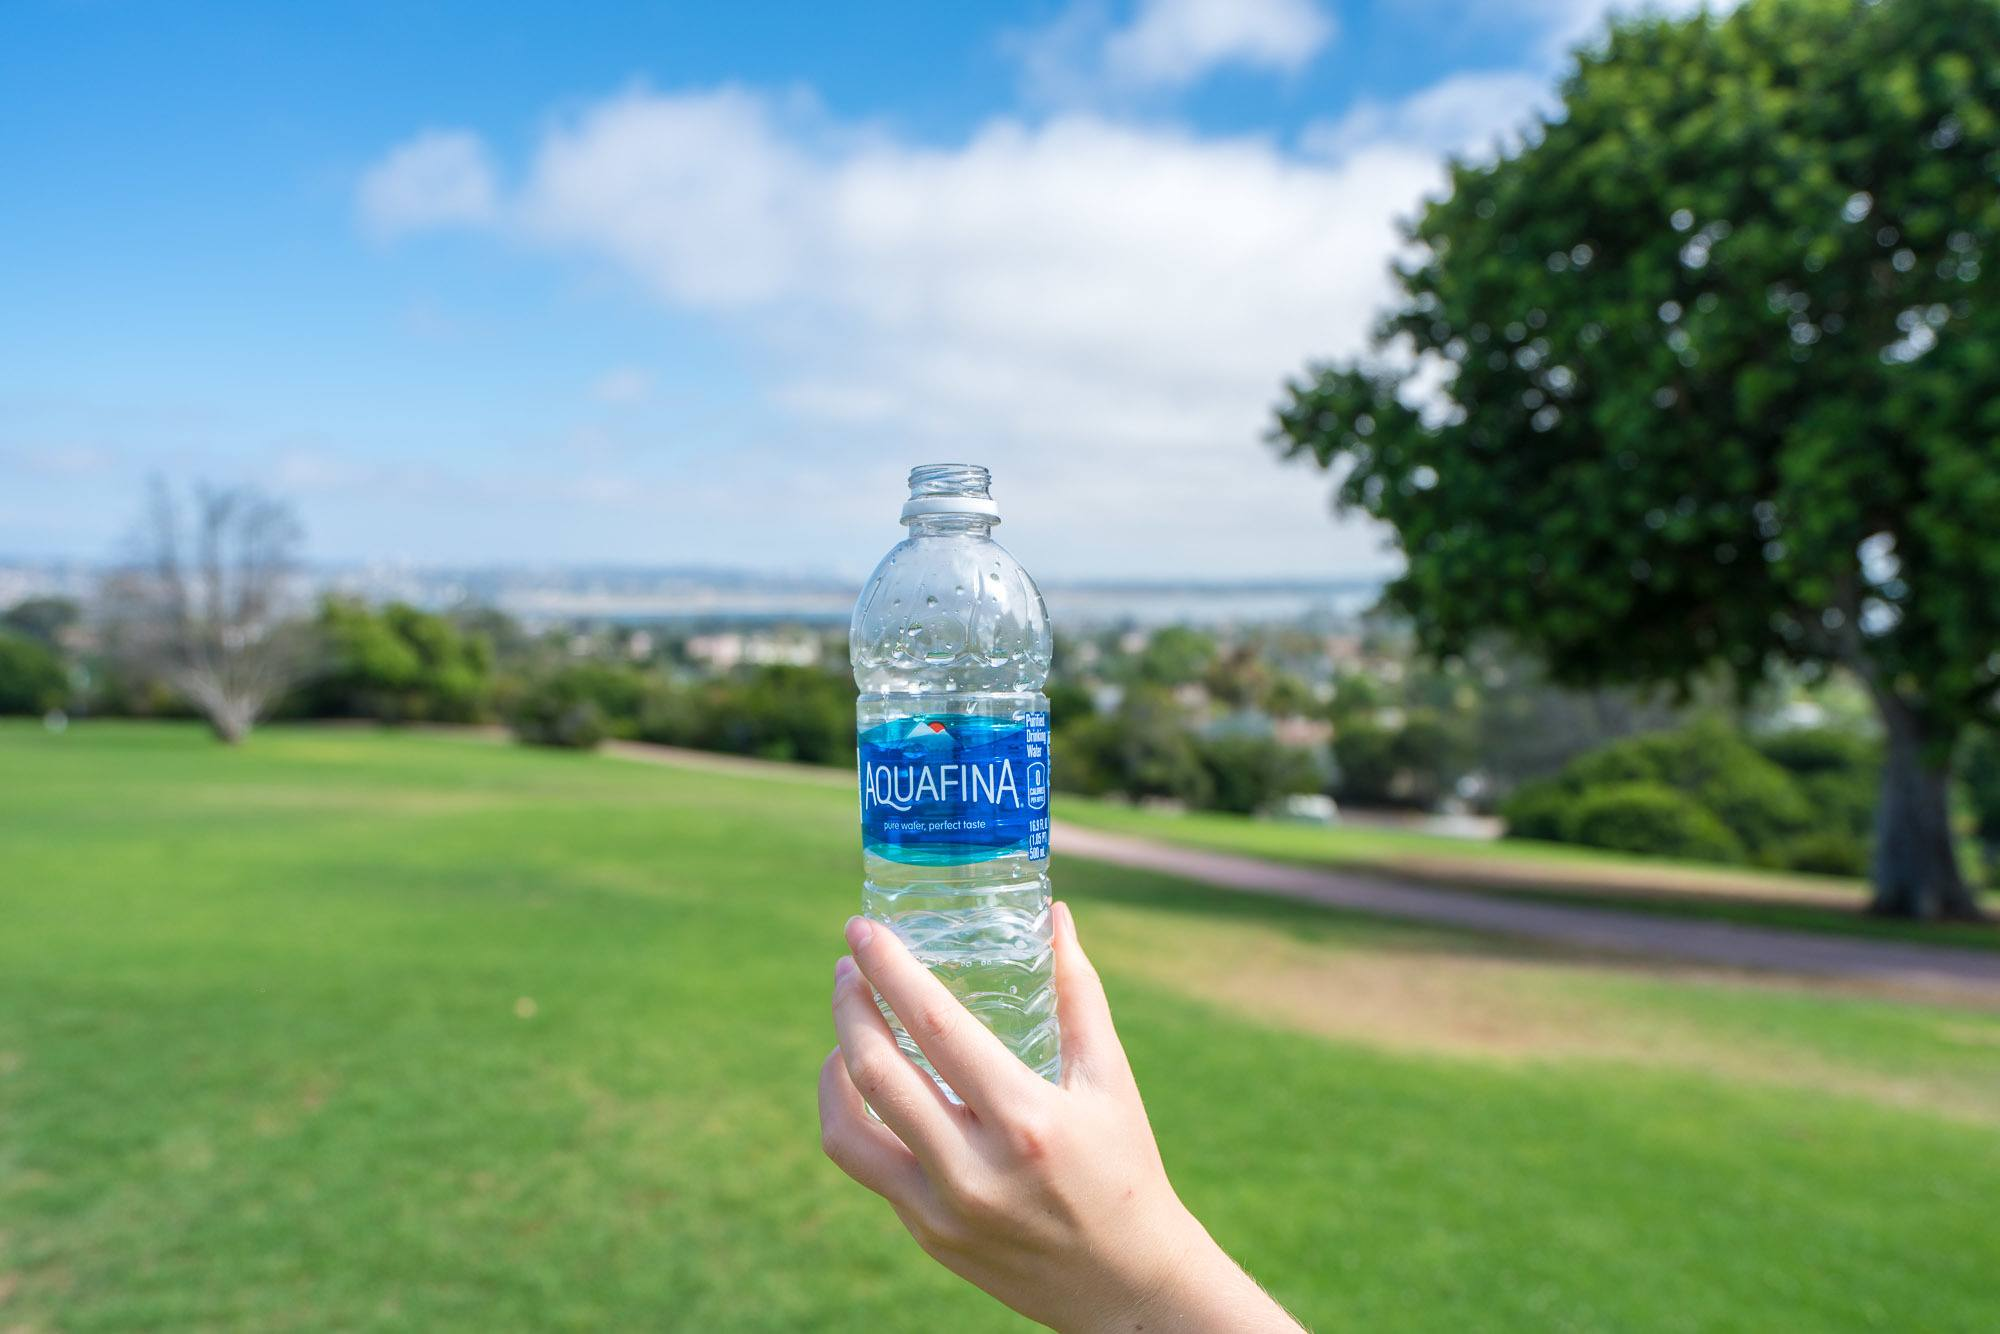 Aquafina water at Kate Sessions Park in Pacific Beach, San Diego.